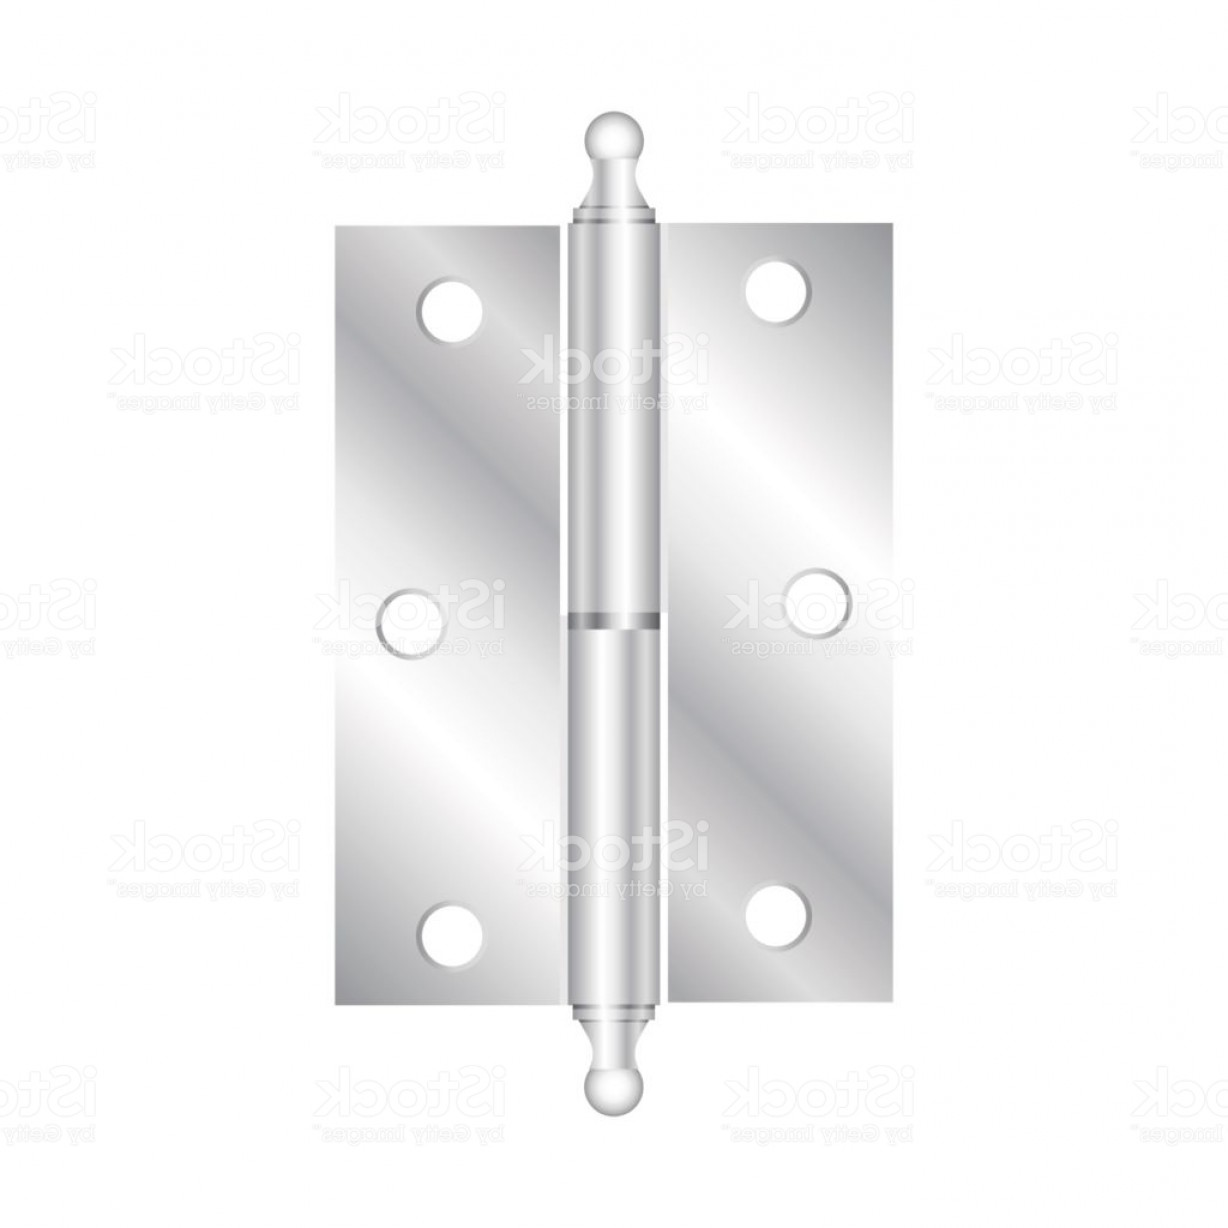 Vector Hinge Western: Realistic Hinges Stainless Steel Icon Vector Illustration Gm